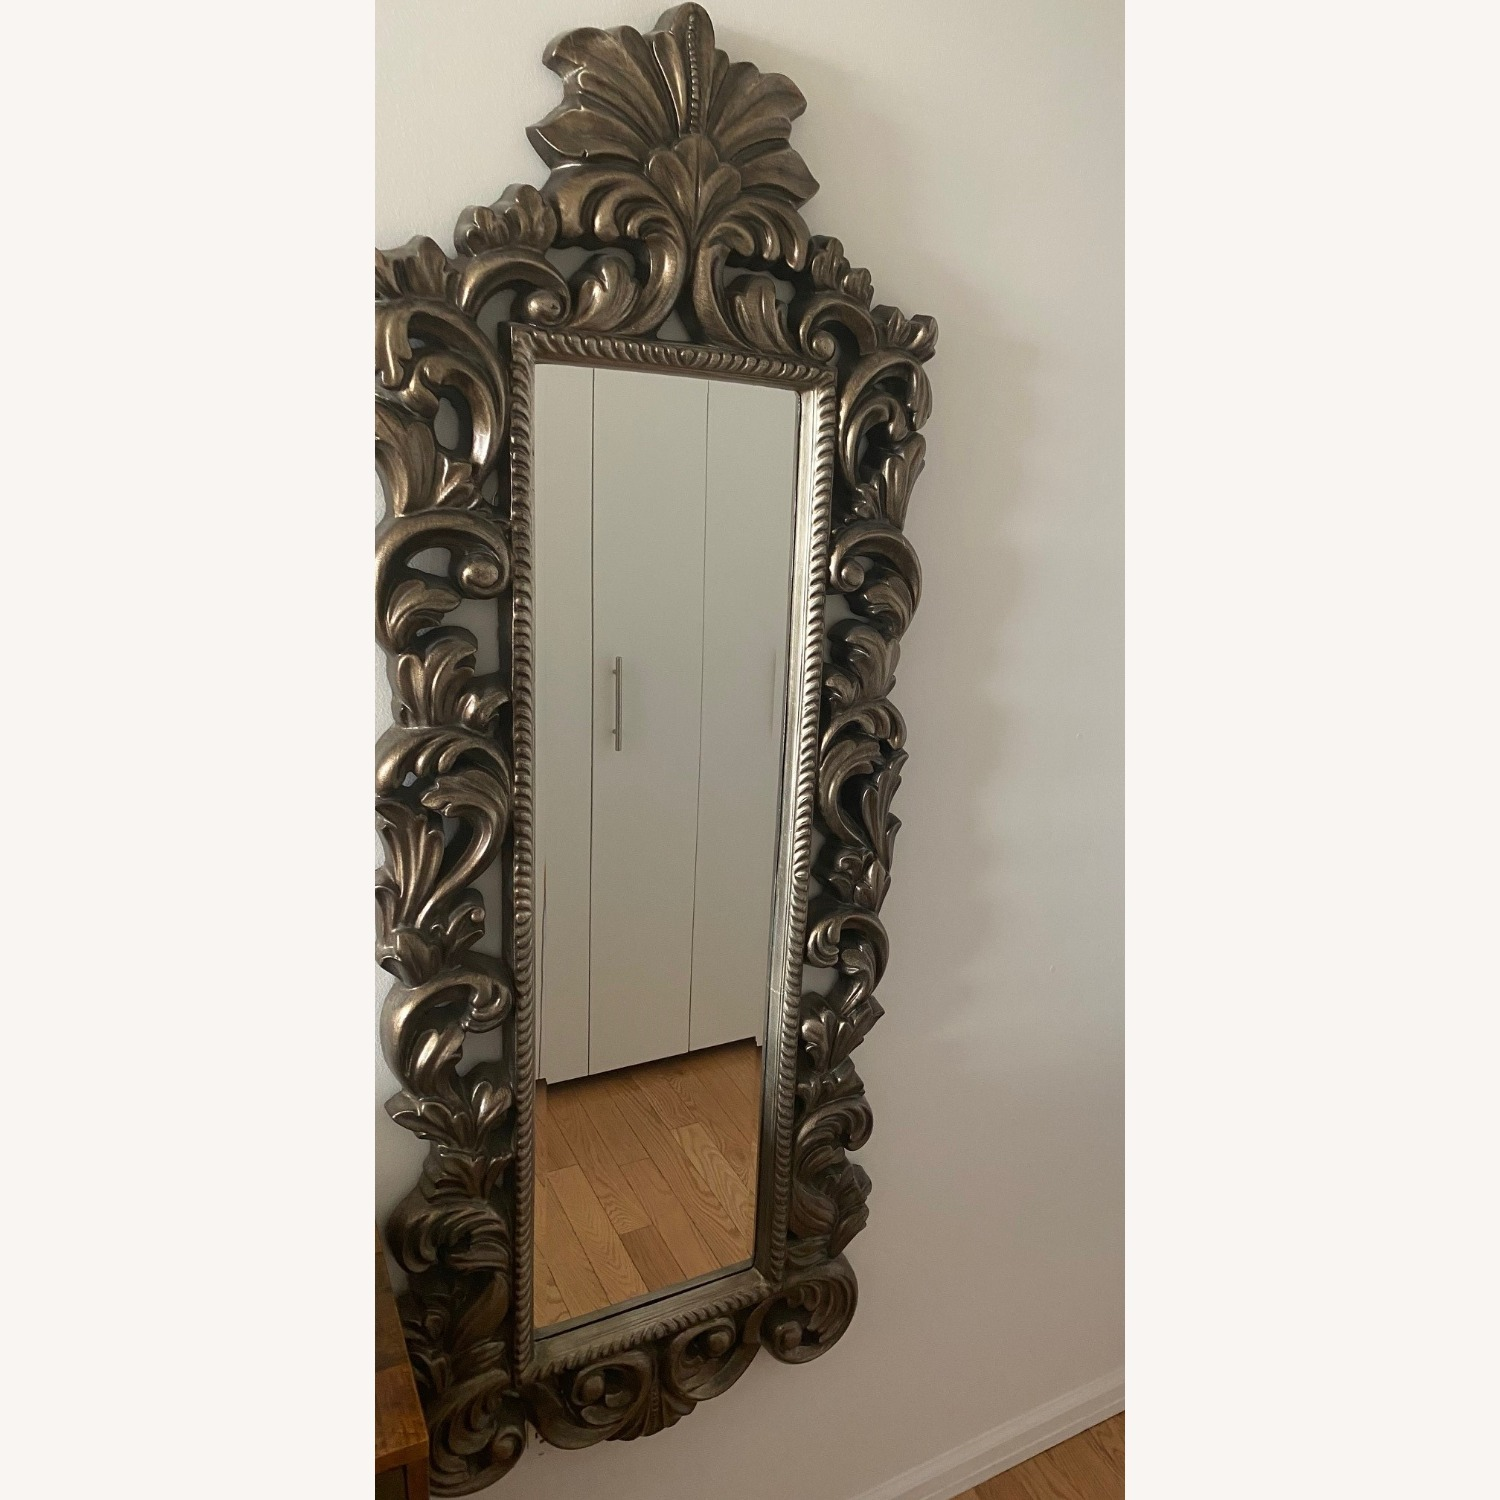 Raymour & Flanigan Wall Mirror Vintage Style - image-1